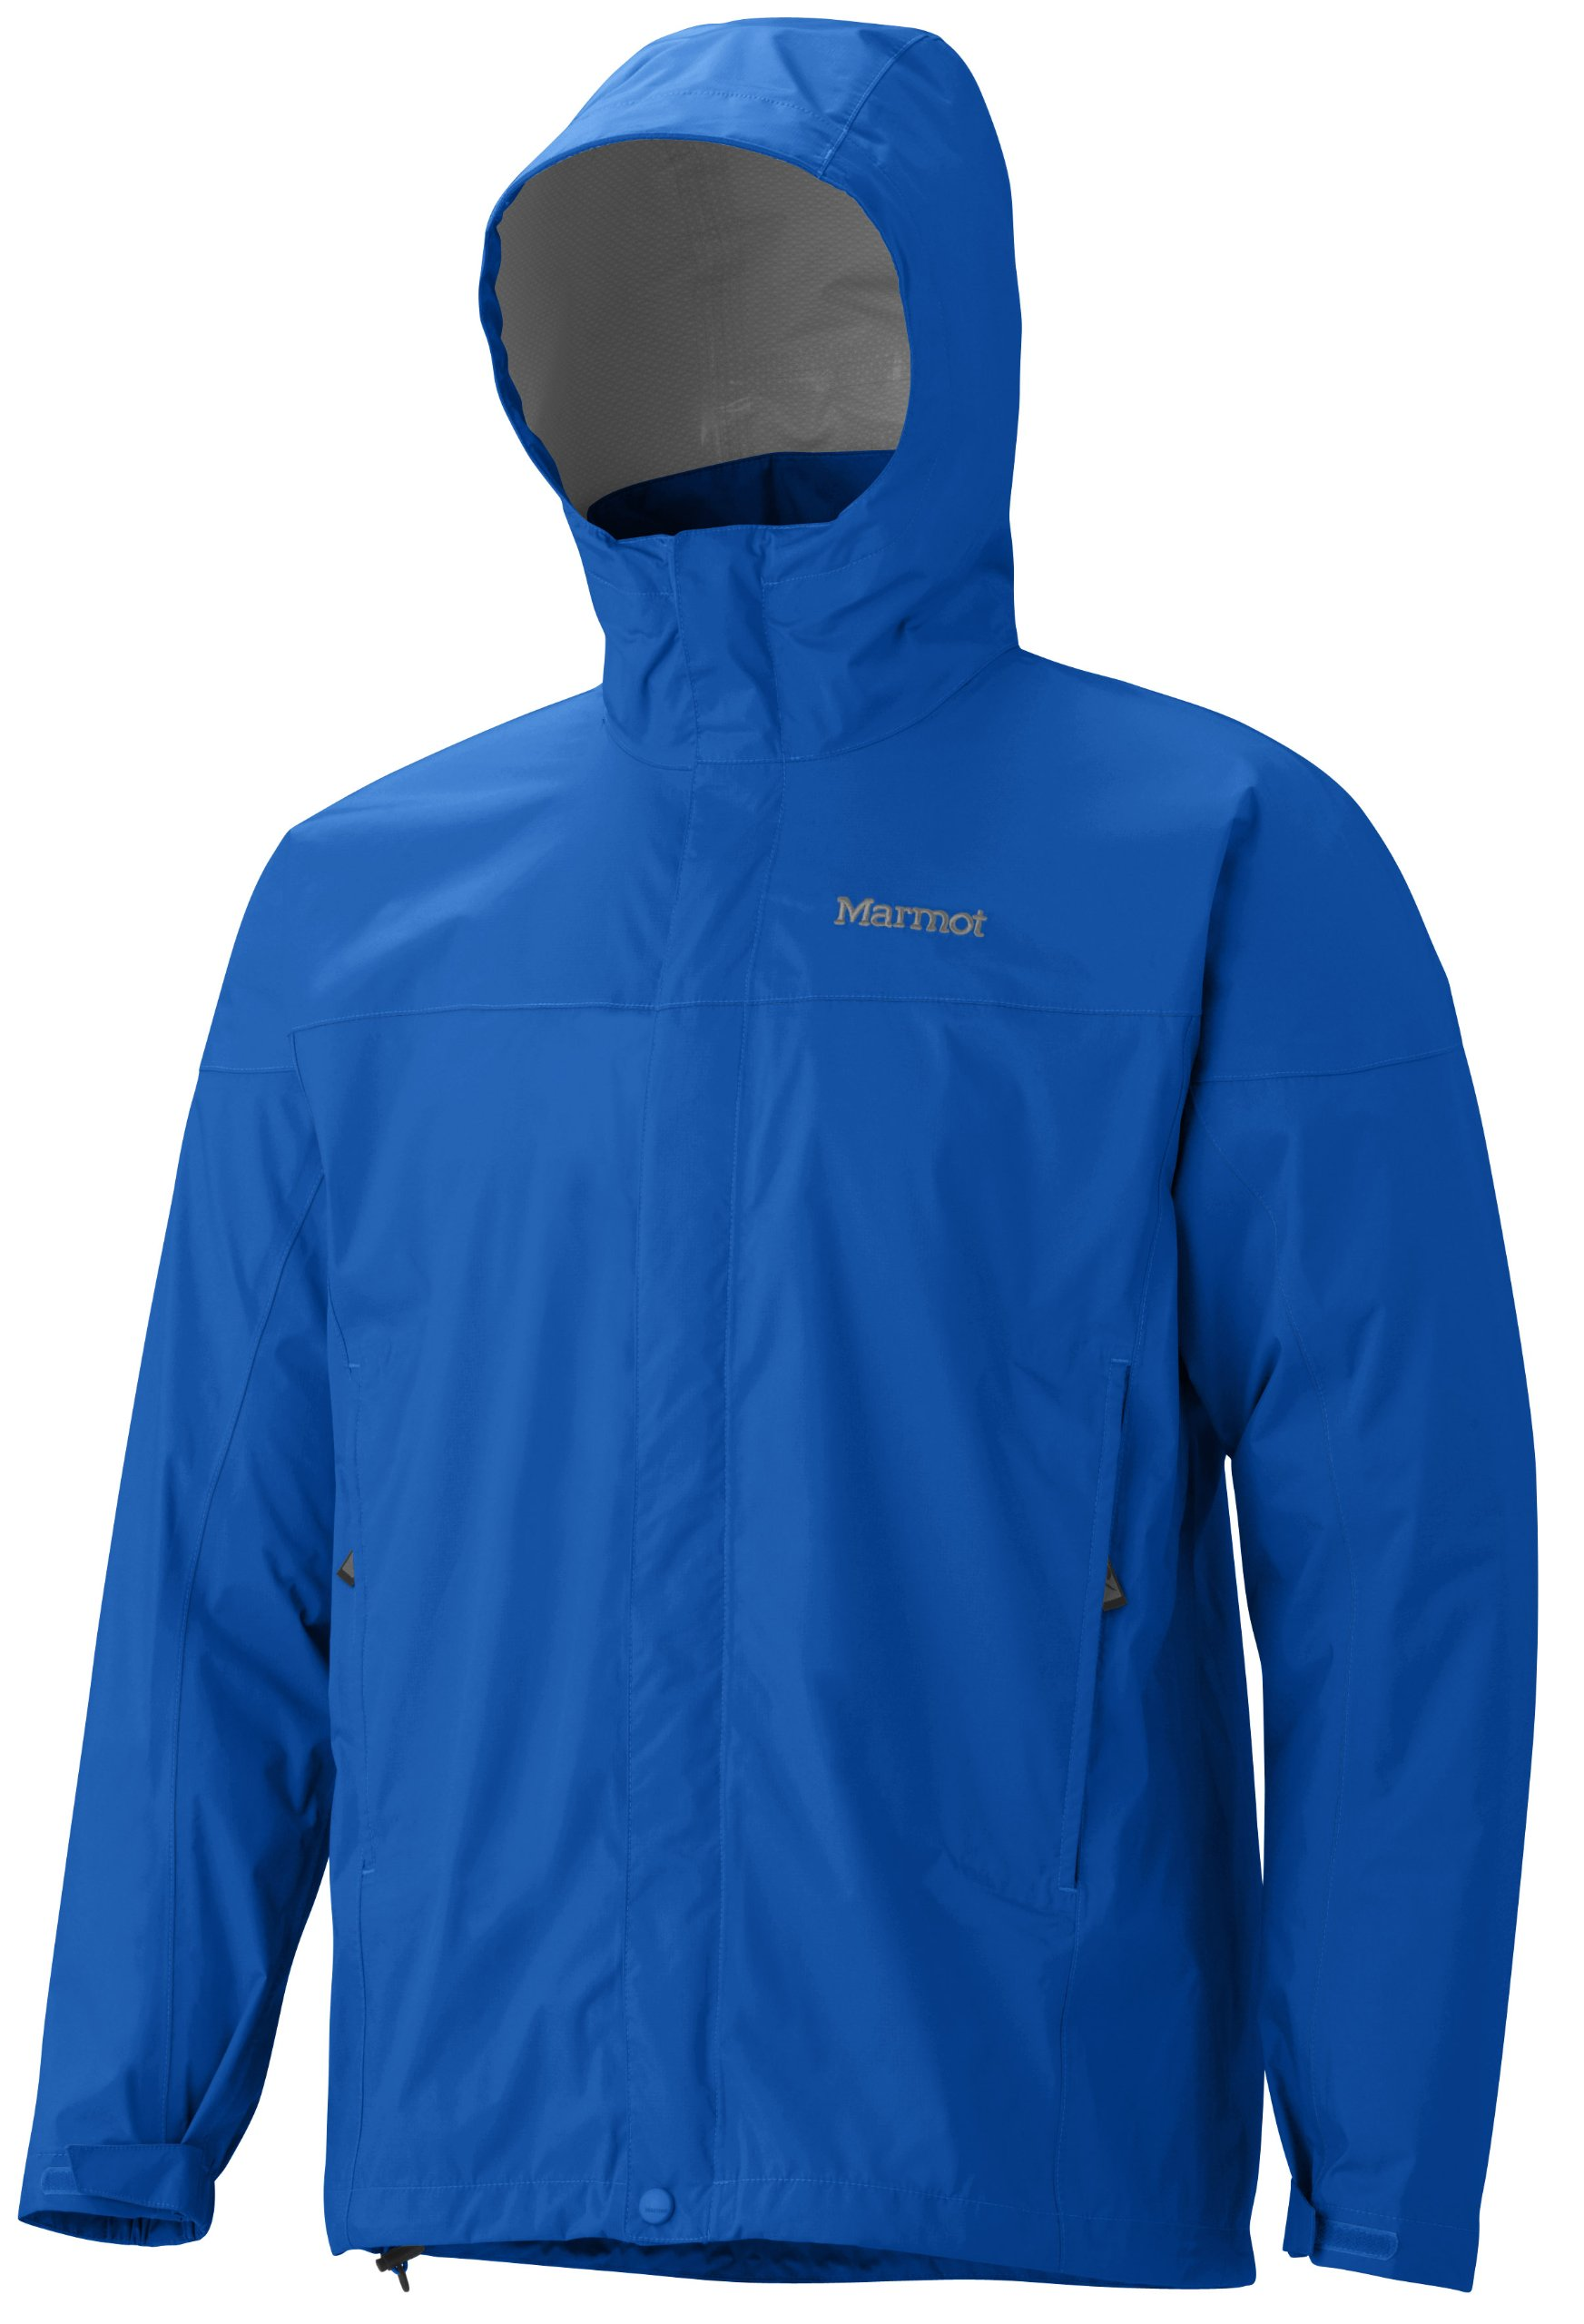 Marmot PreCip Jacket - Men's Blue Ocean Large by Marmot